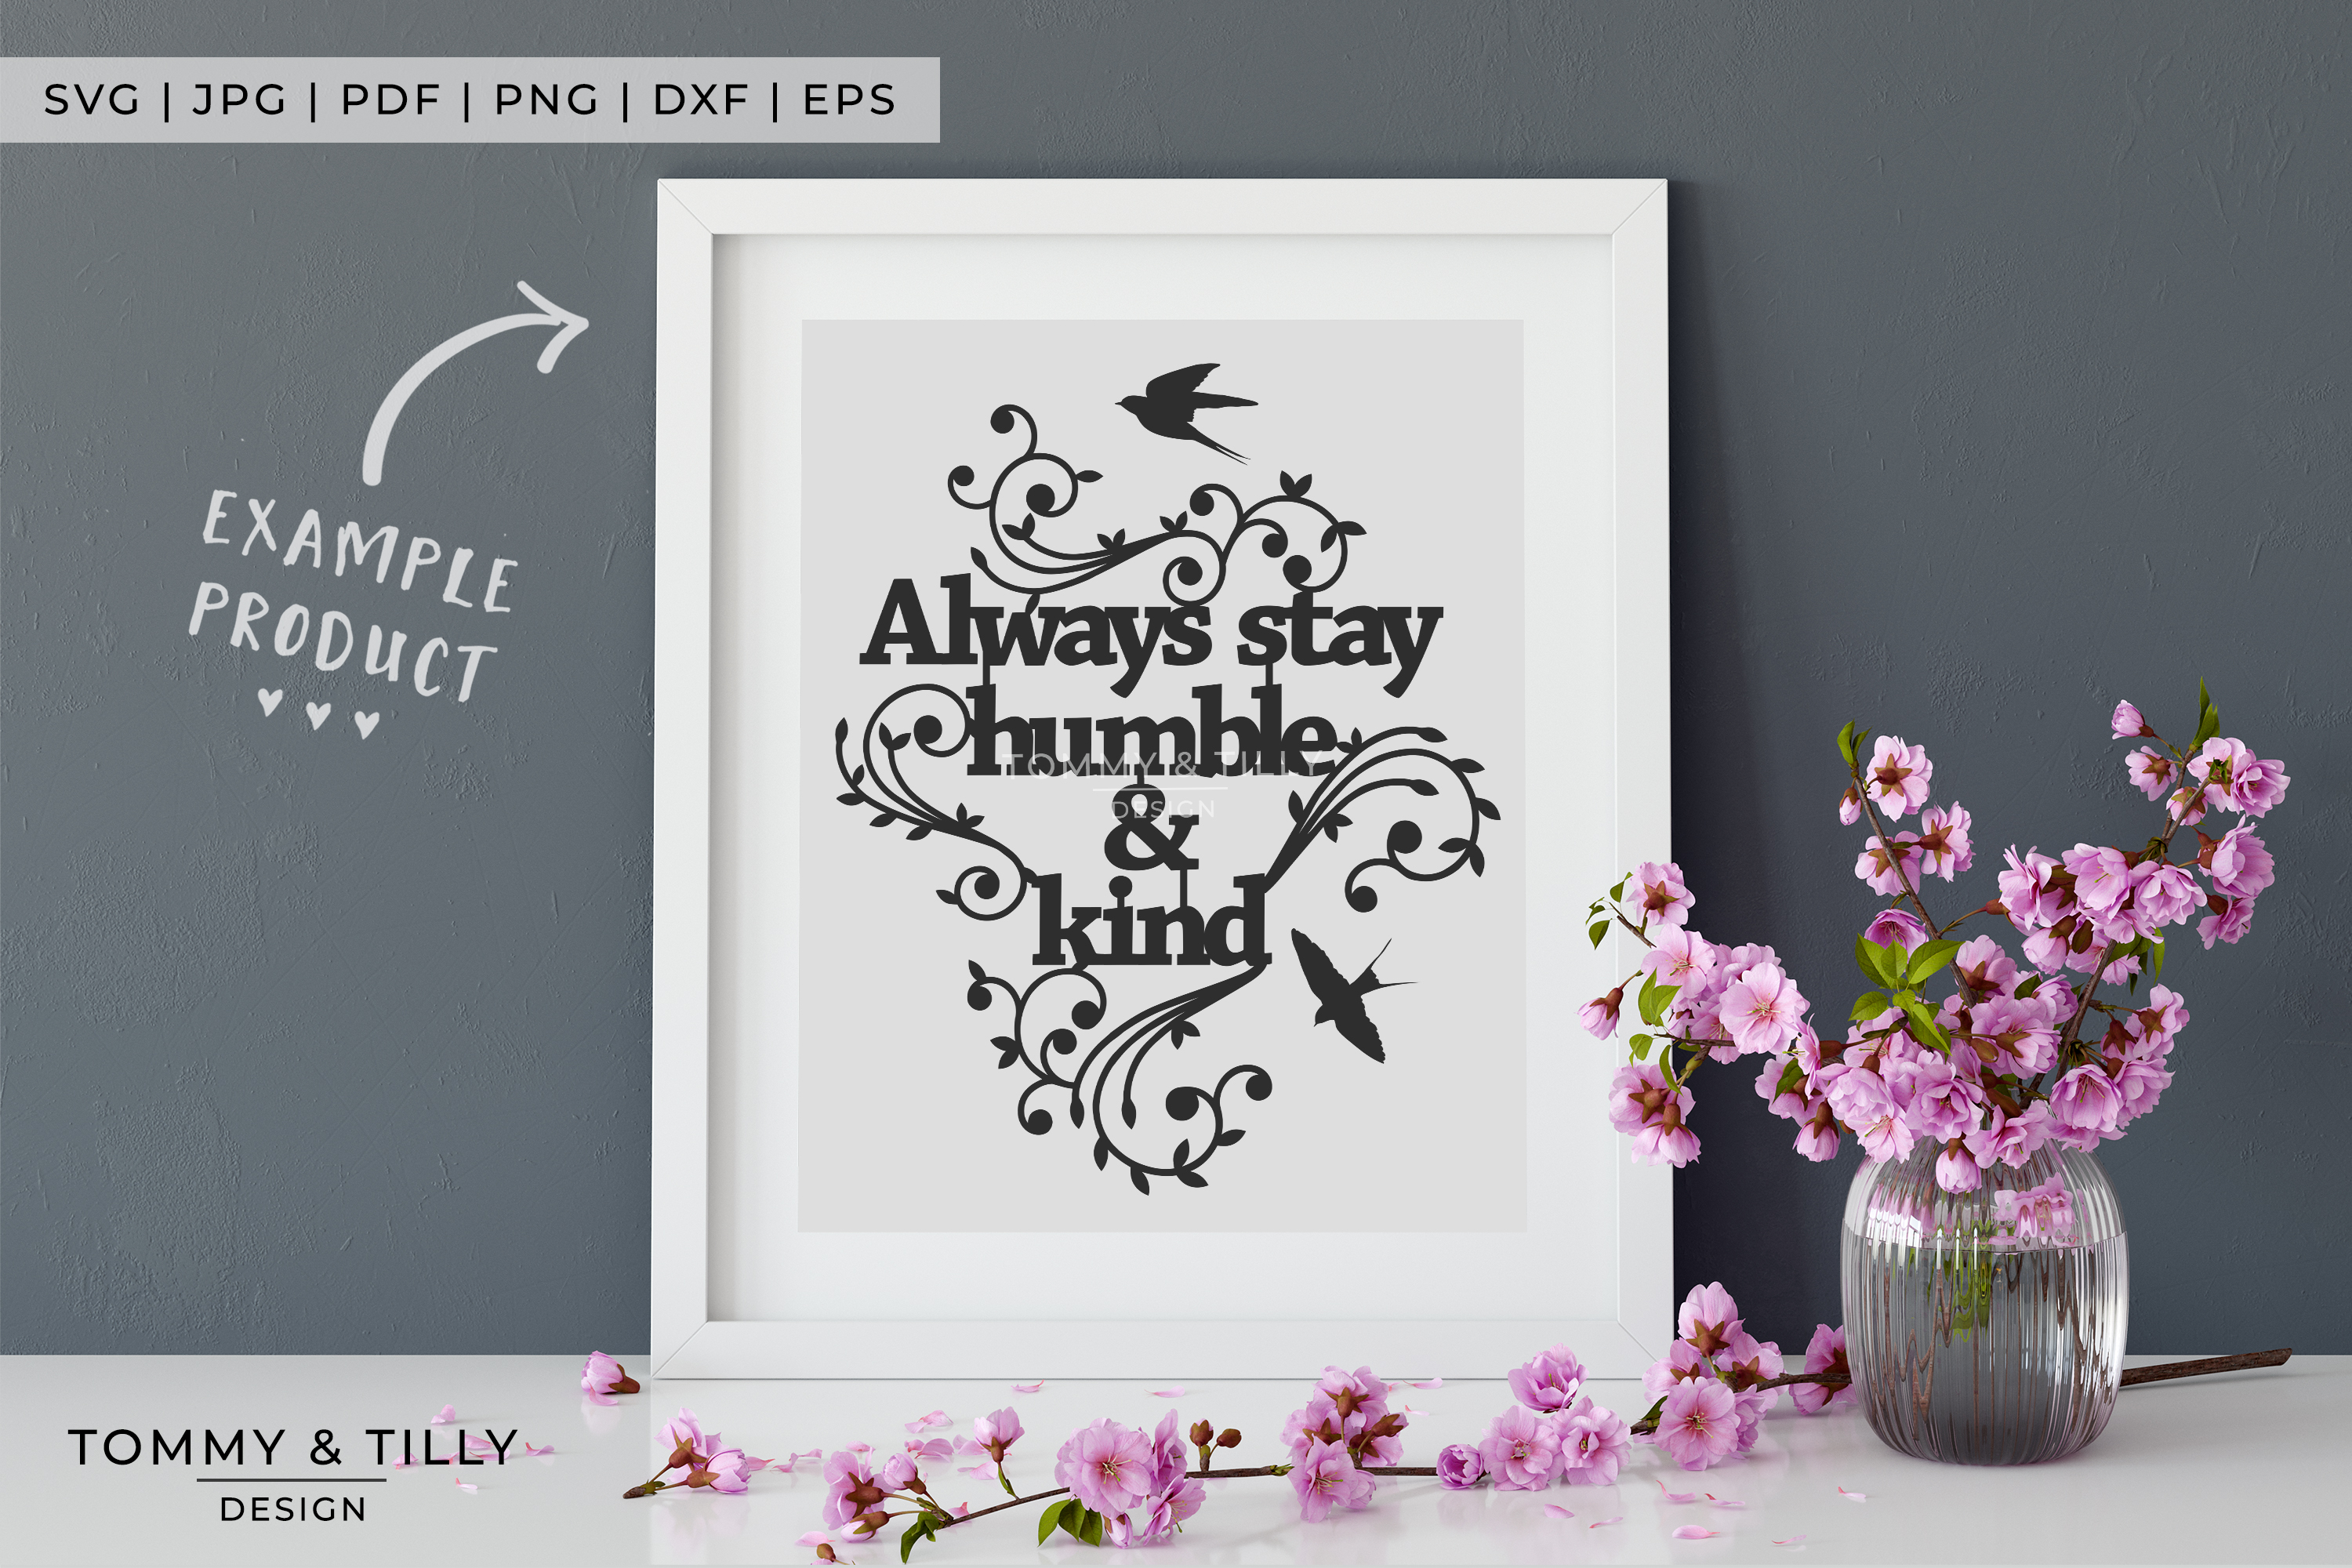 Always stay humble & kind - Papercut SVG EPS DXF PNG PDF example image 7